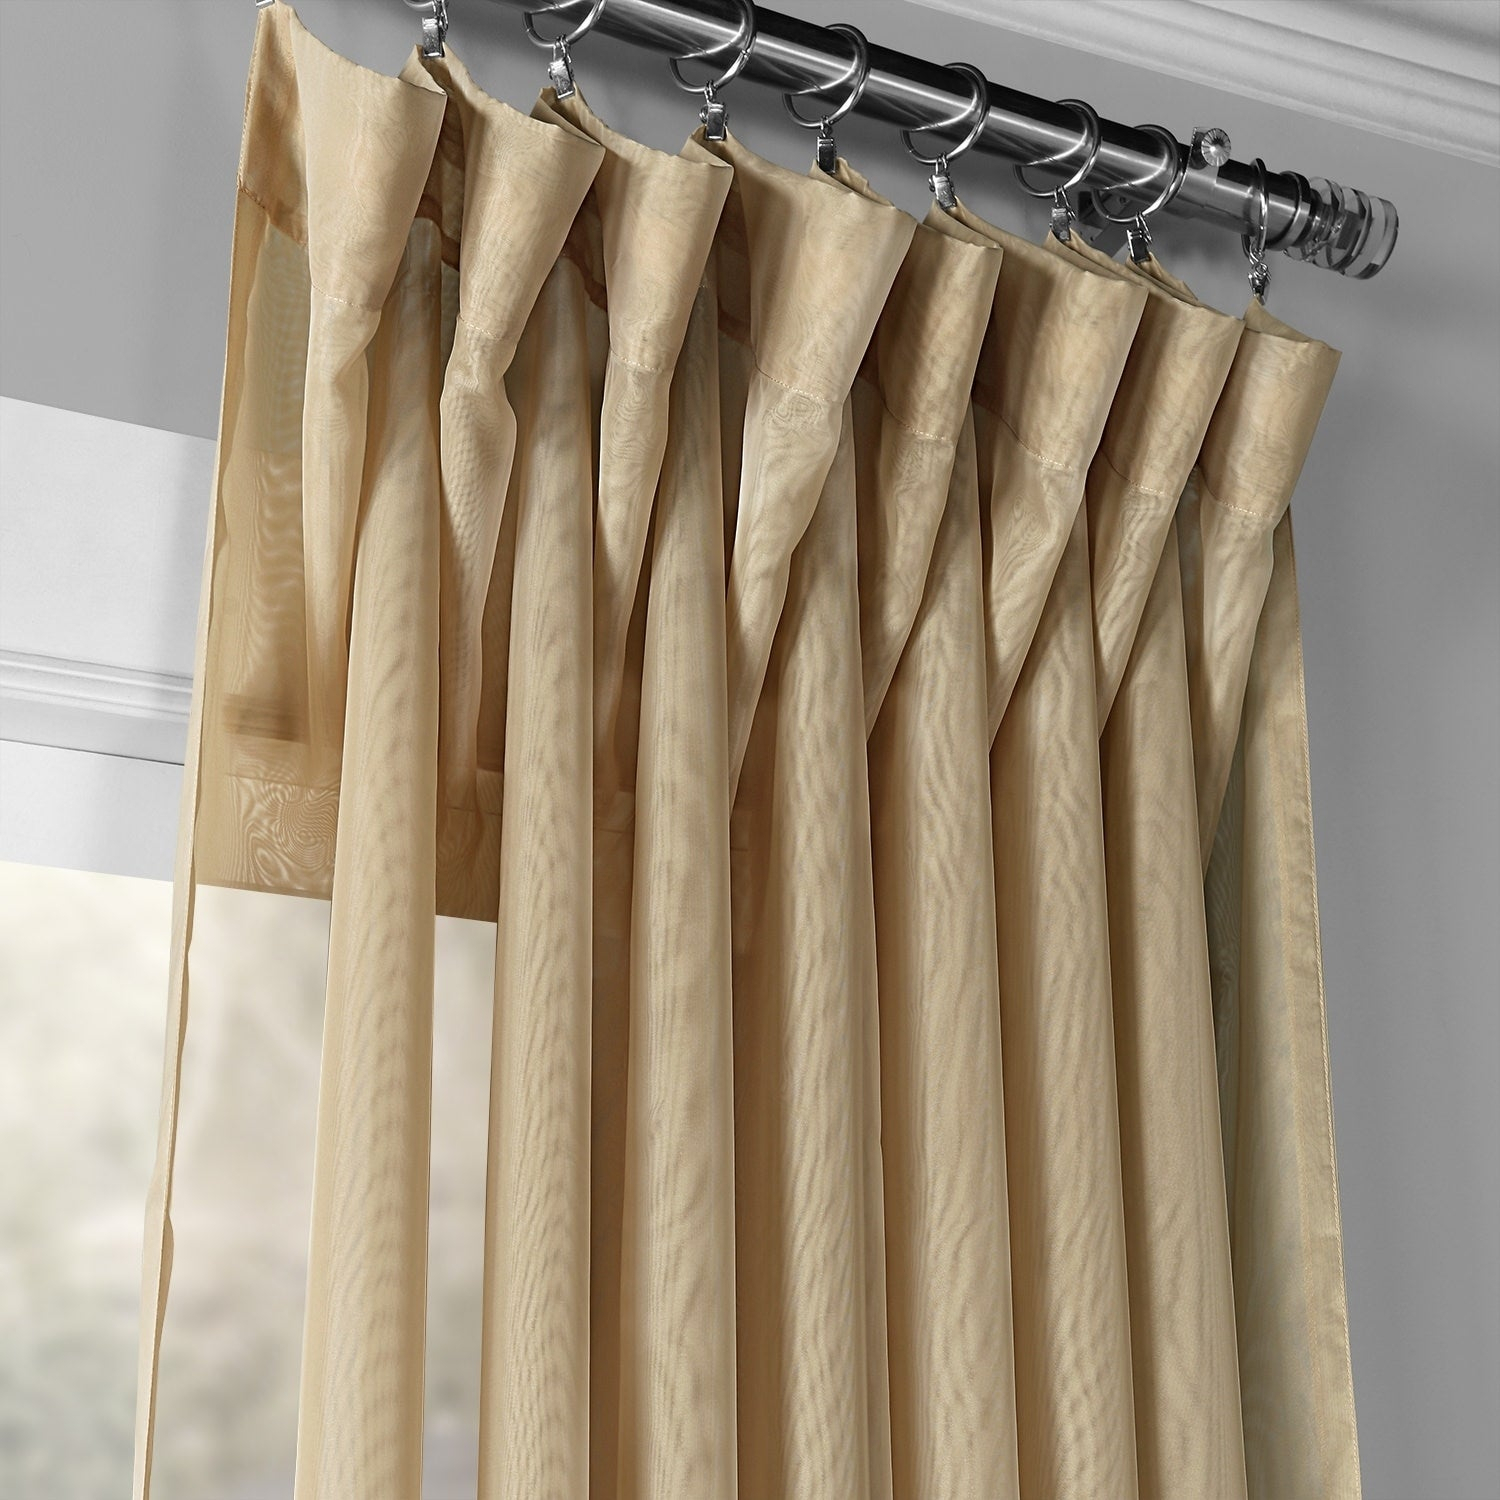 Exclusive Fabrics Signature Extrawide Double Layer Sheer Curtain Panel Within Signature Extrawide Double Layer Sheer Curtain Panels (View 10 of 11)